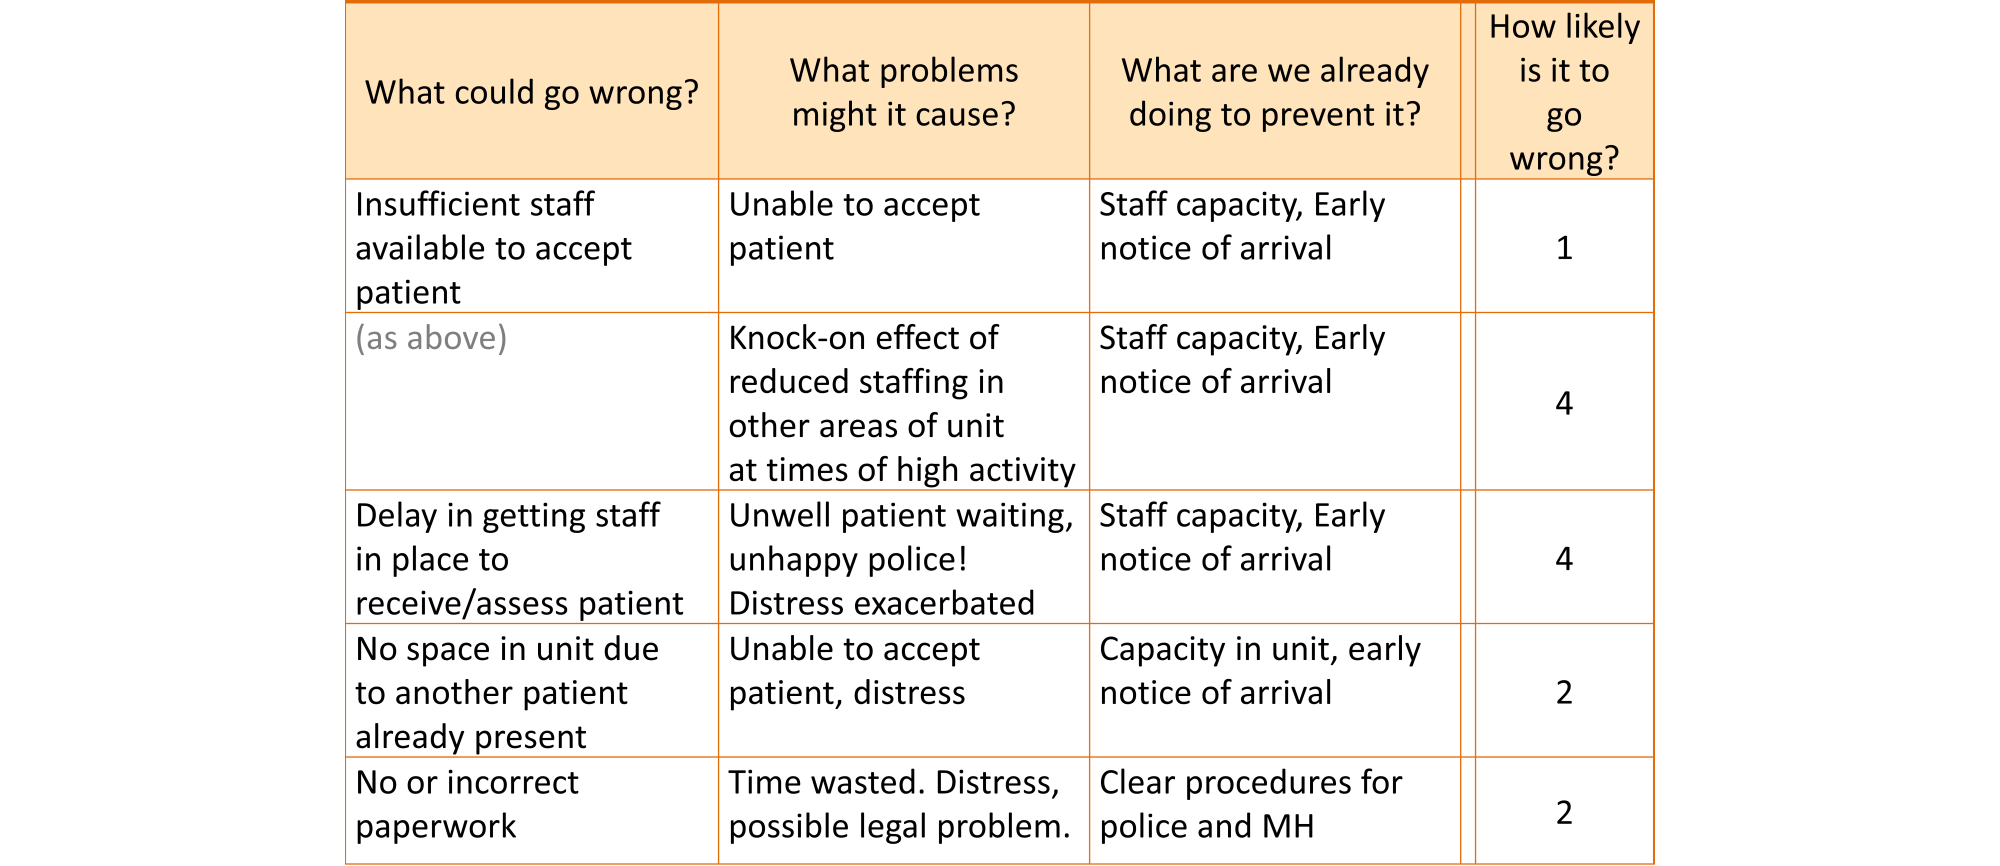 Portion of a risk table, showing the likelihood ratings for some events. For example, one of the things that could go wrong is insufficient staff being available to accept a patient. This might result in being unable to accept the patient at all. However, the likelihood of this was rated 1, given the measures already in place to prevent this, such as staff capacity and early notice of arrival. Another possibility is that staff are made available by moving them from other areas of the unit, leading to reduced staffing in those other areas. This is much more likely to happen, and was rated 4.